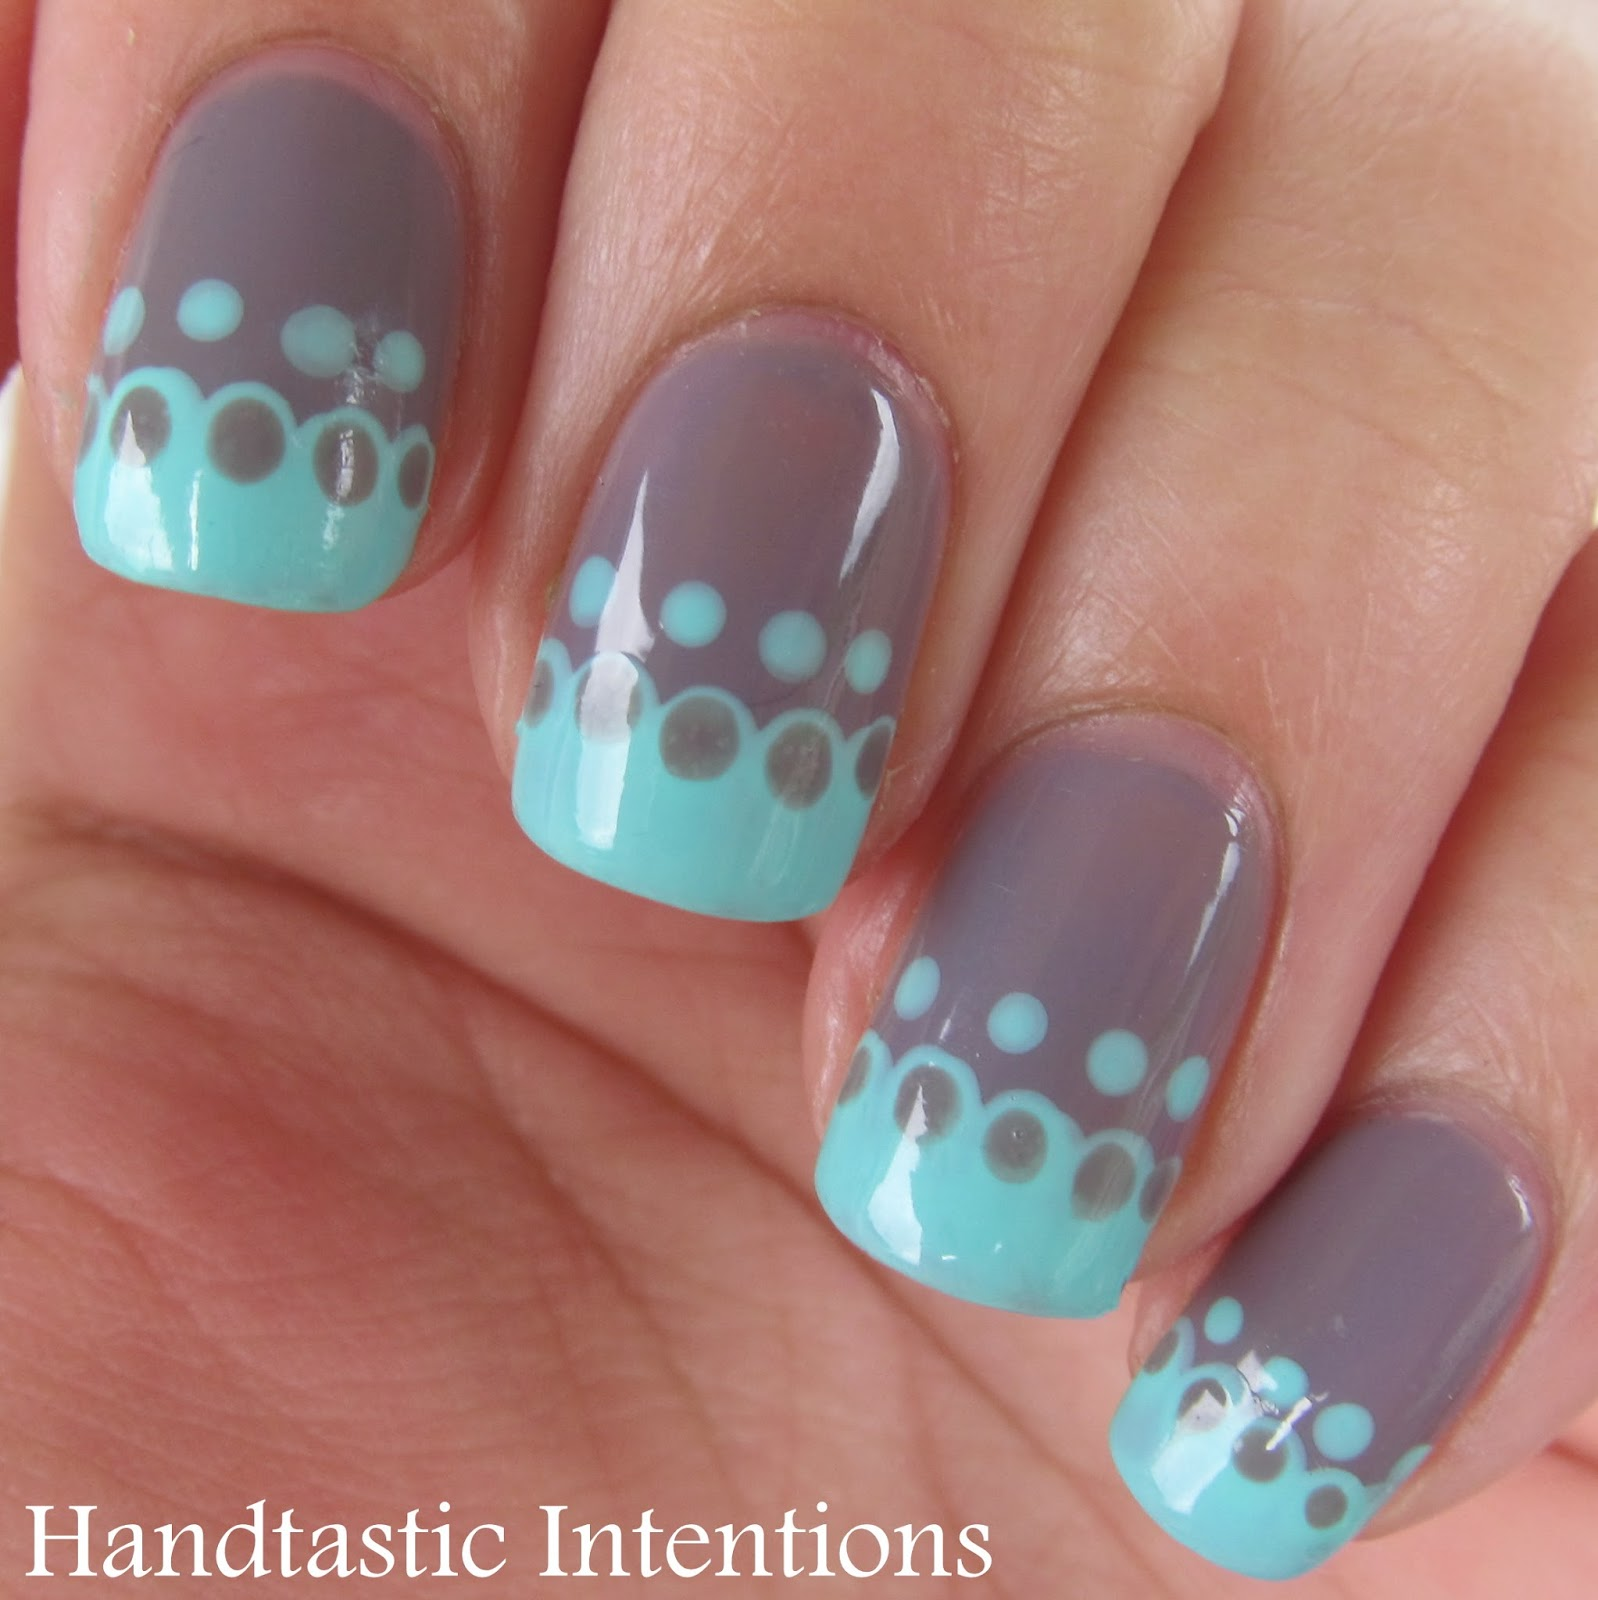 Handtastic Intentions: Nail Art: Simple Lace French Tip